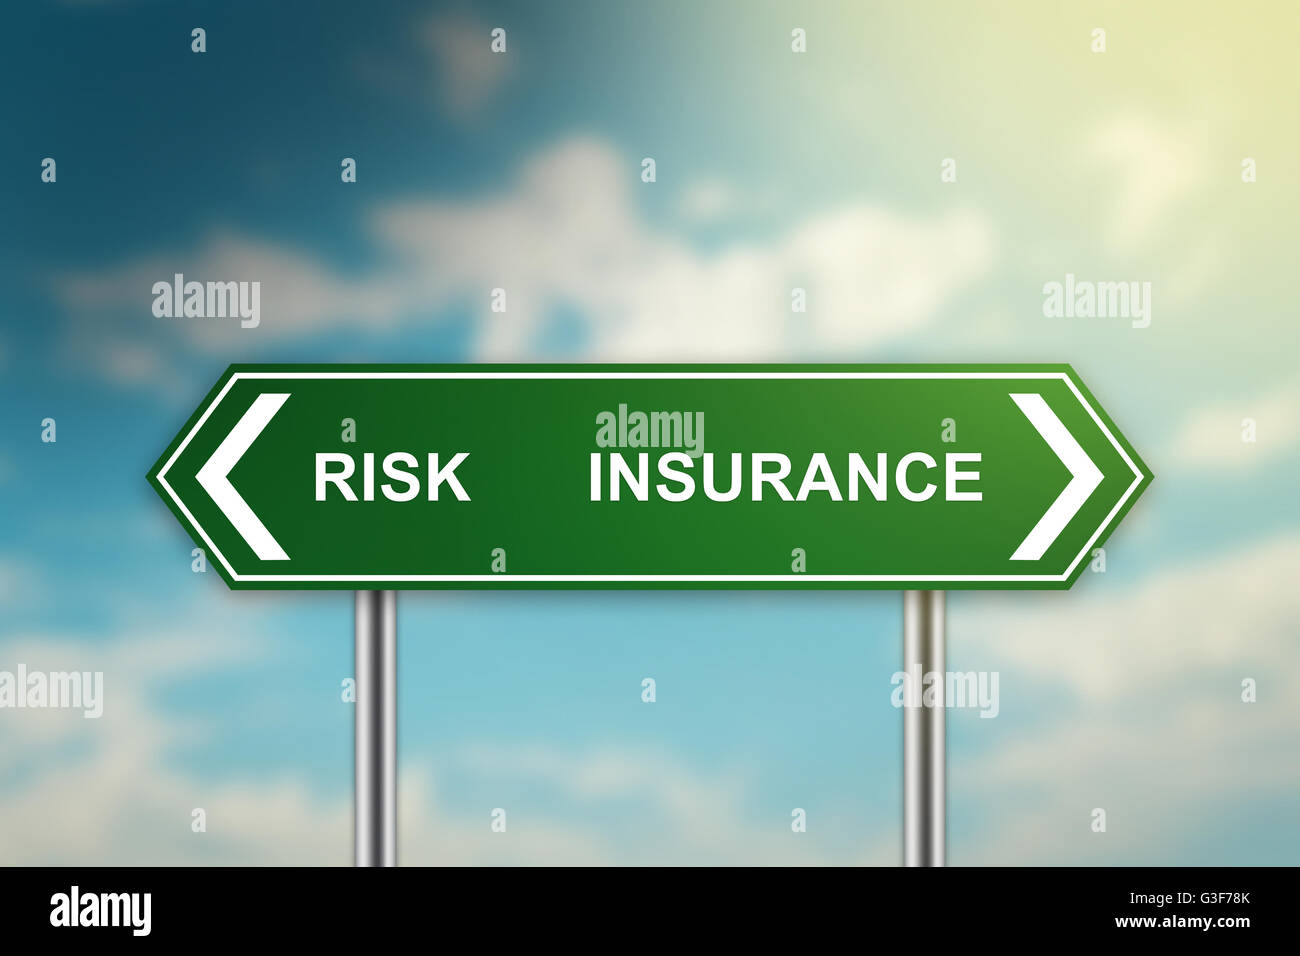 Allstate Flood Sign In >> Home Life Insurance Company Stock Photos & Home Life Insurance Company Stock Images - Alamy